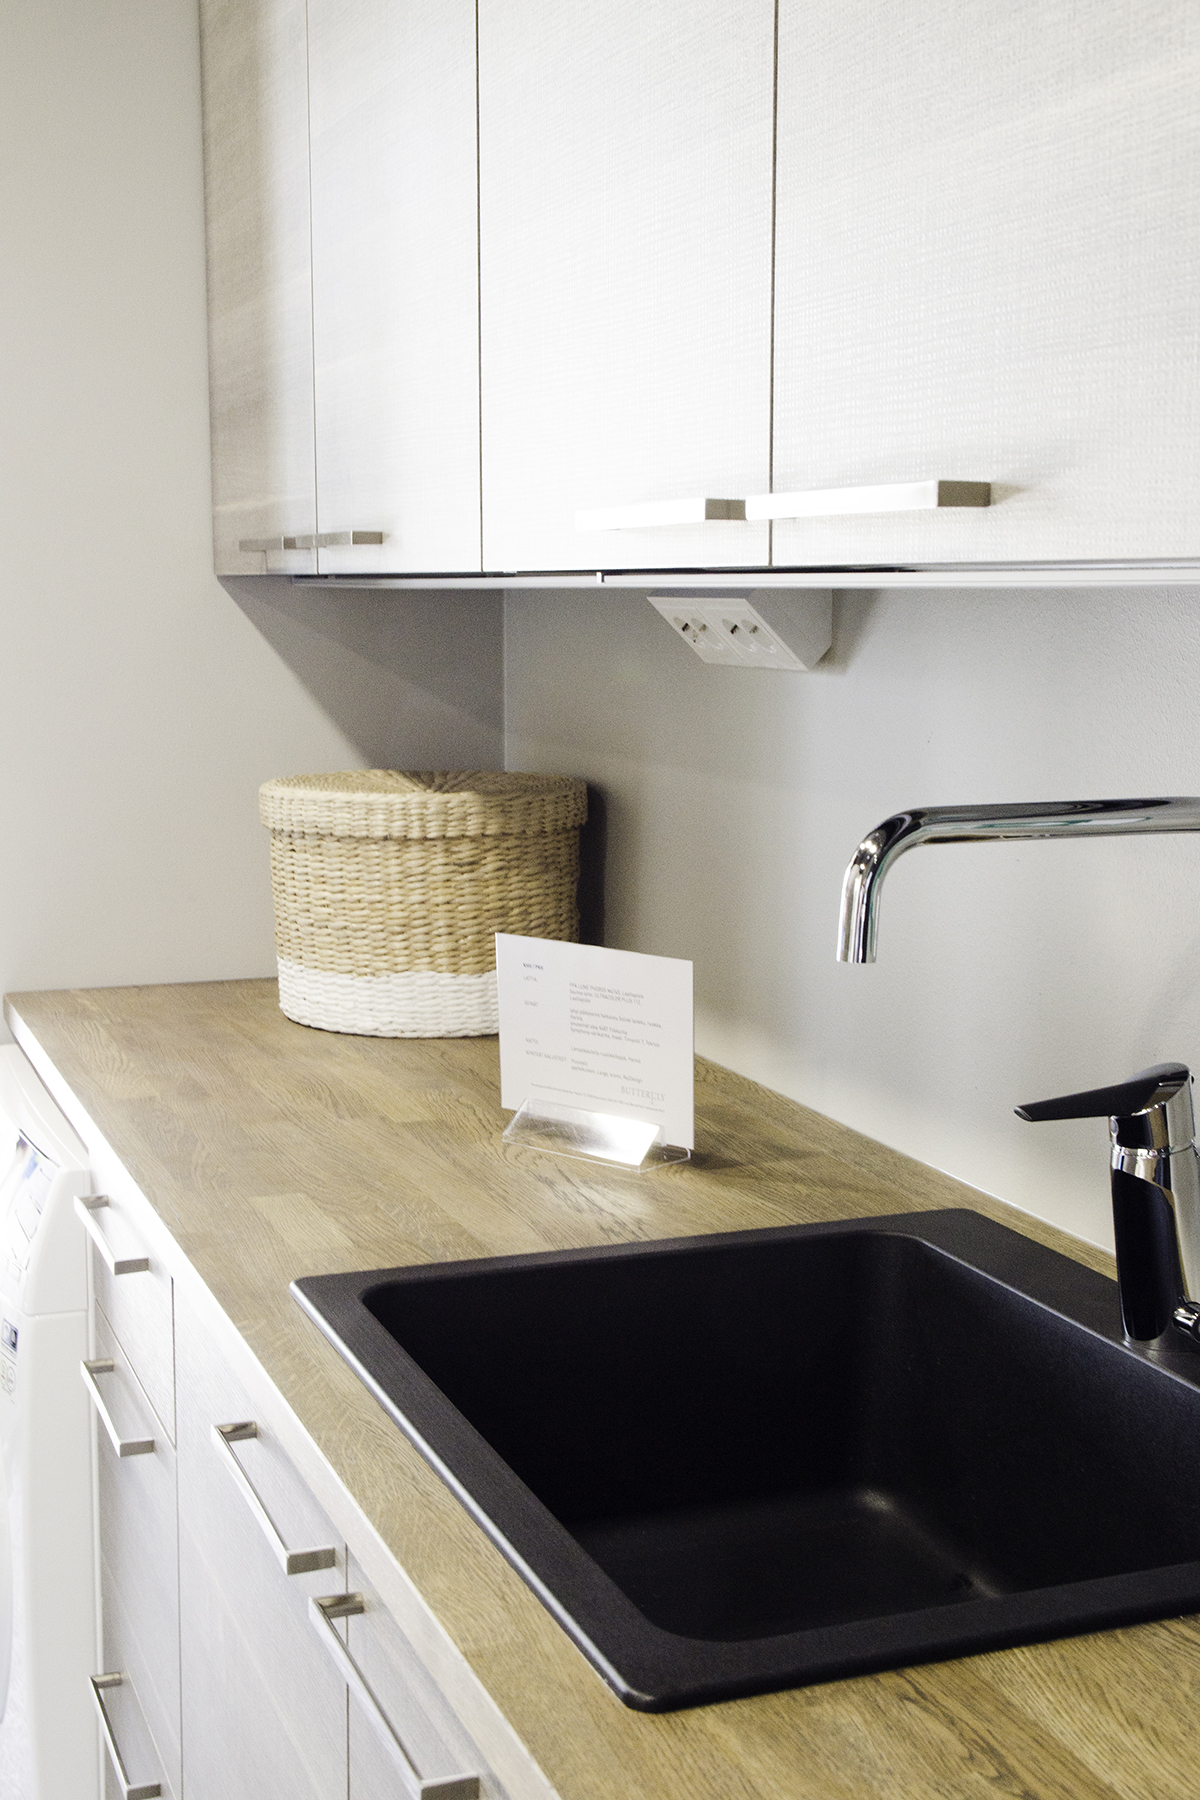 Composite sink in a utility room